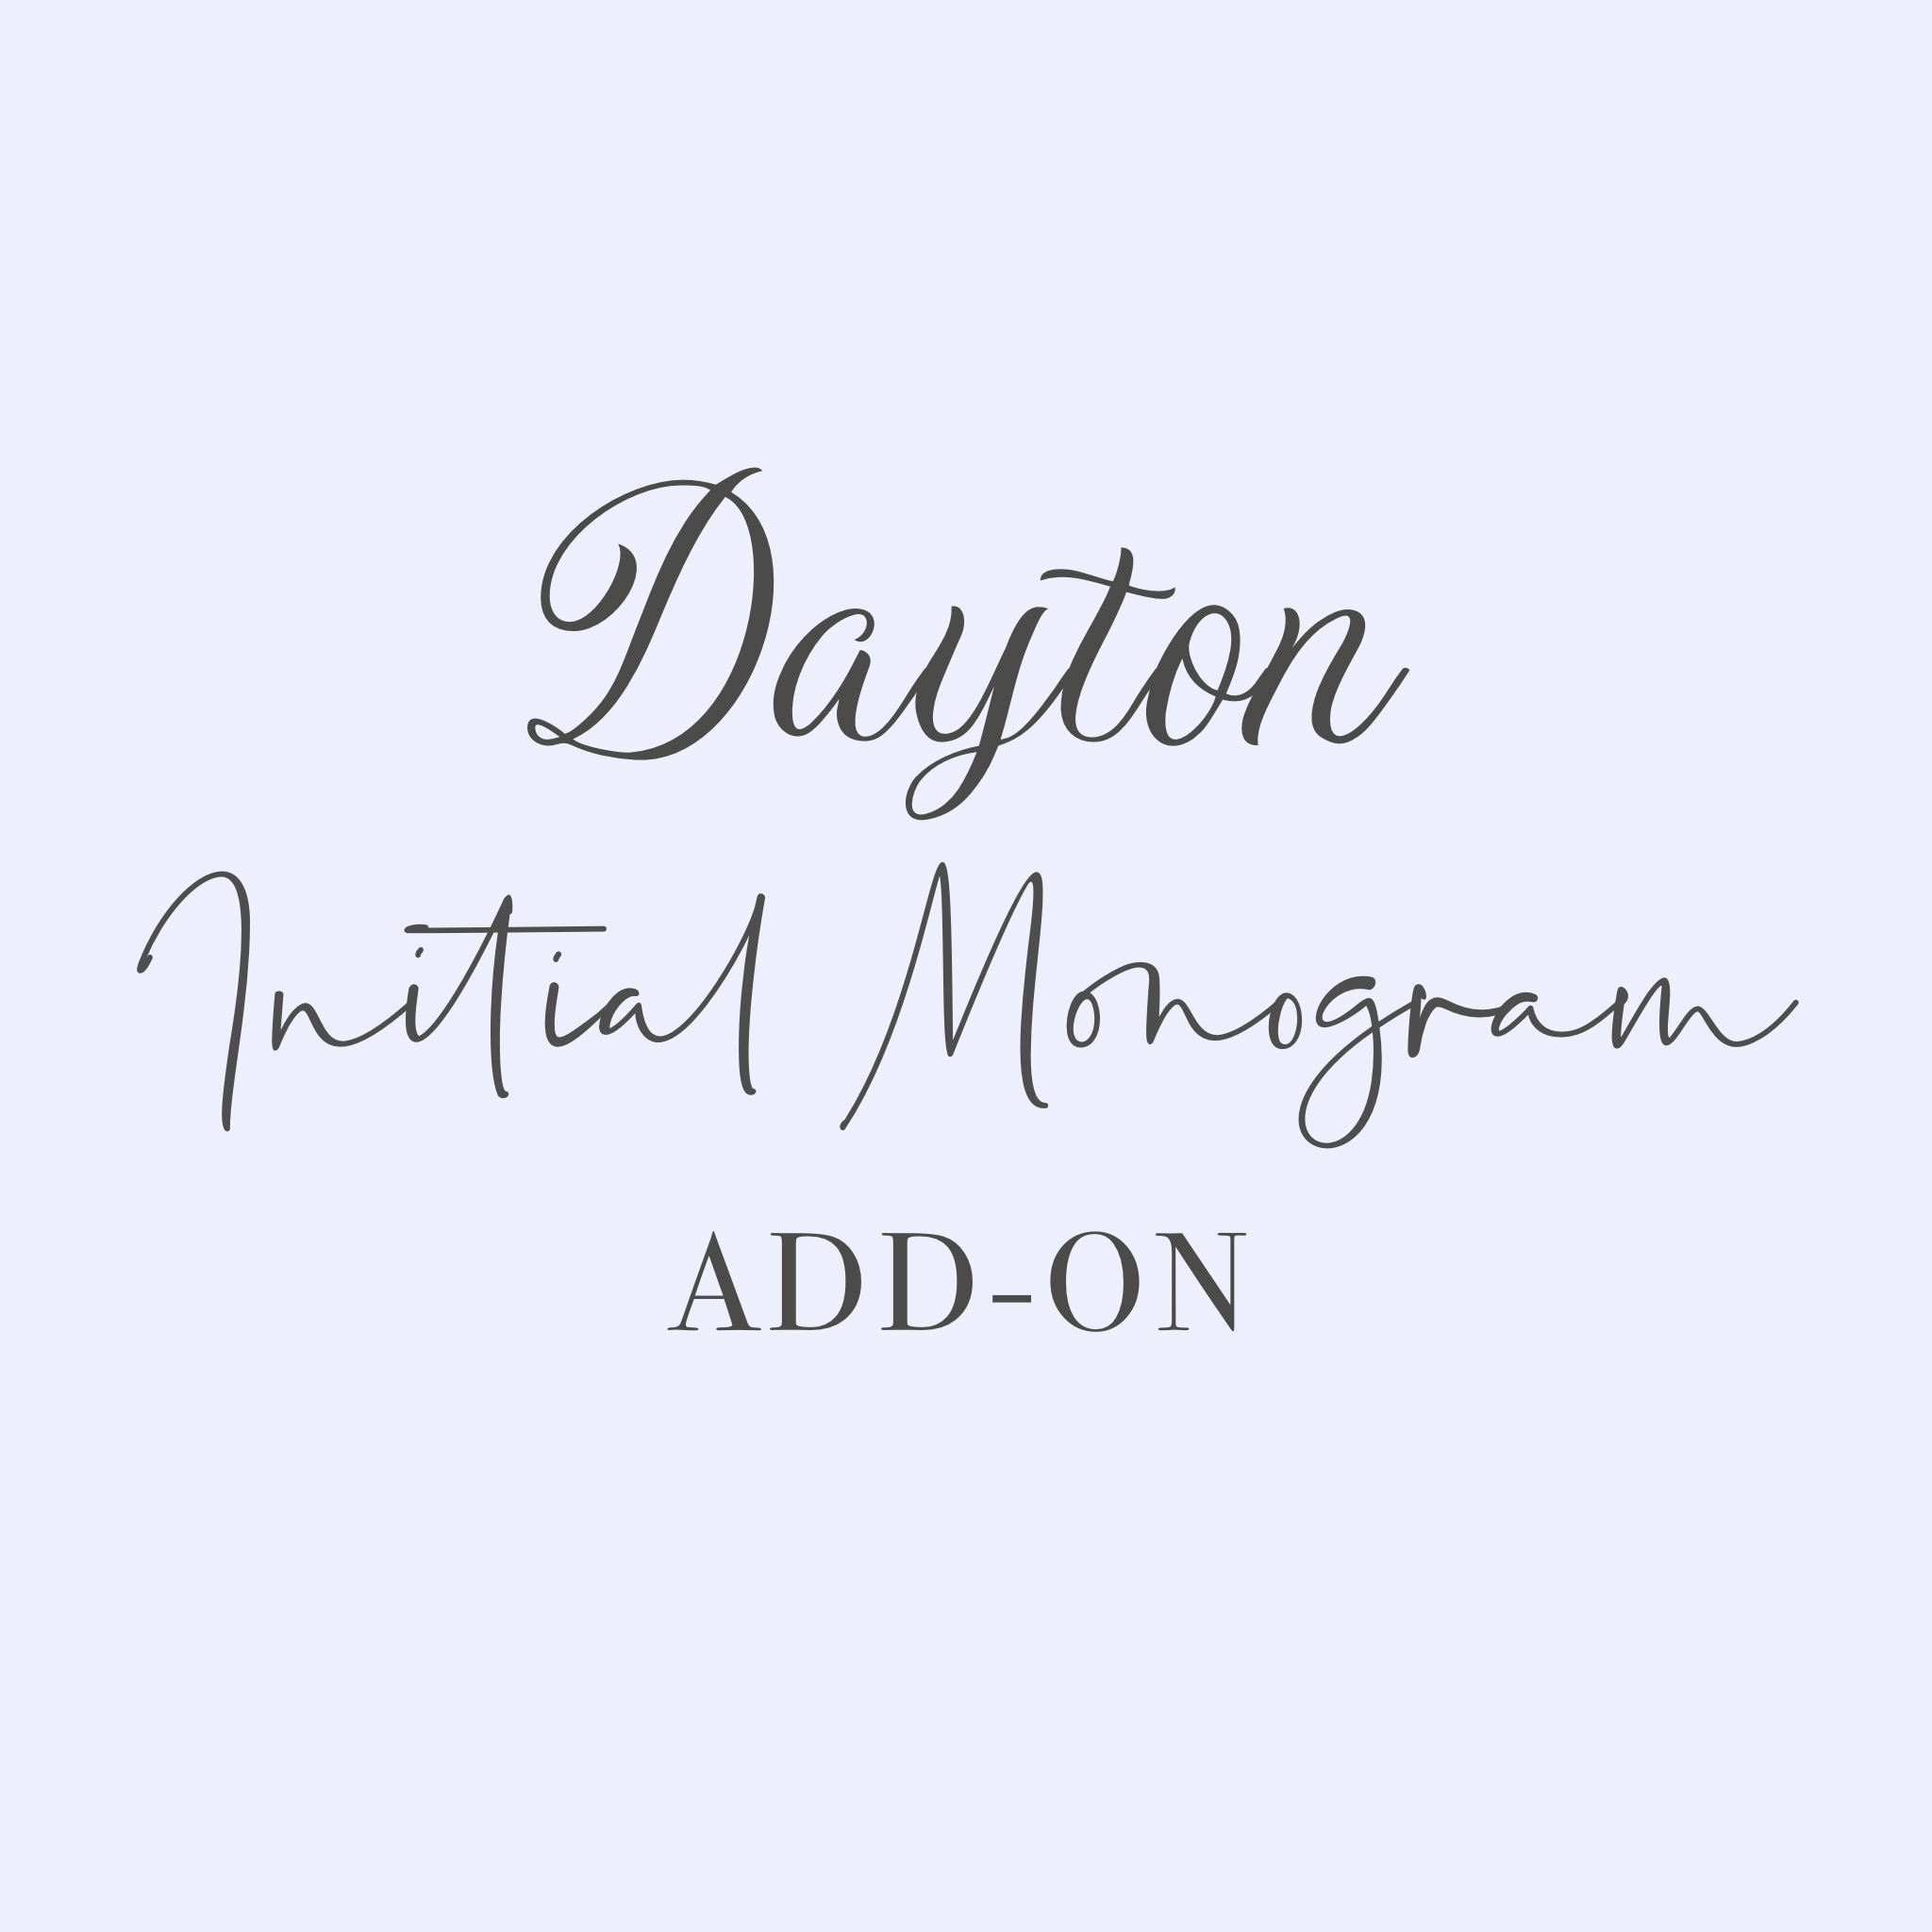 Dayton Initial Monogram Add-On